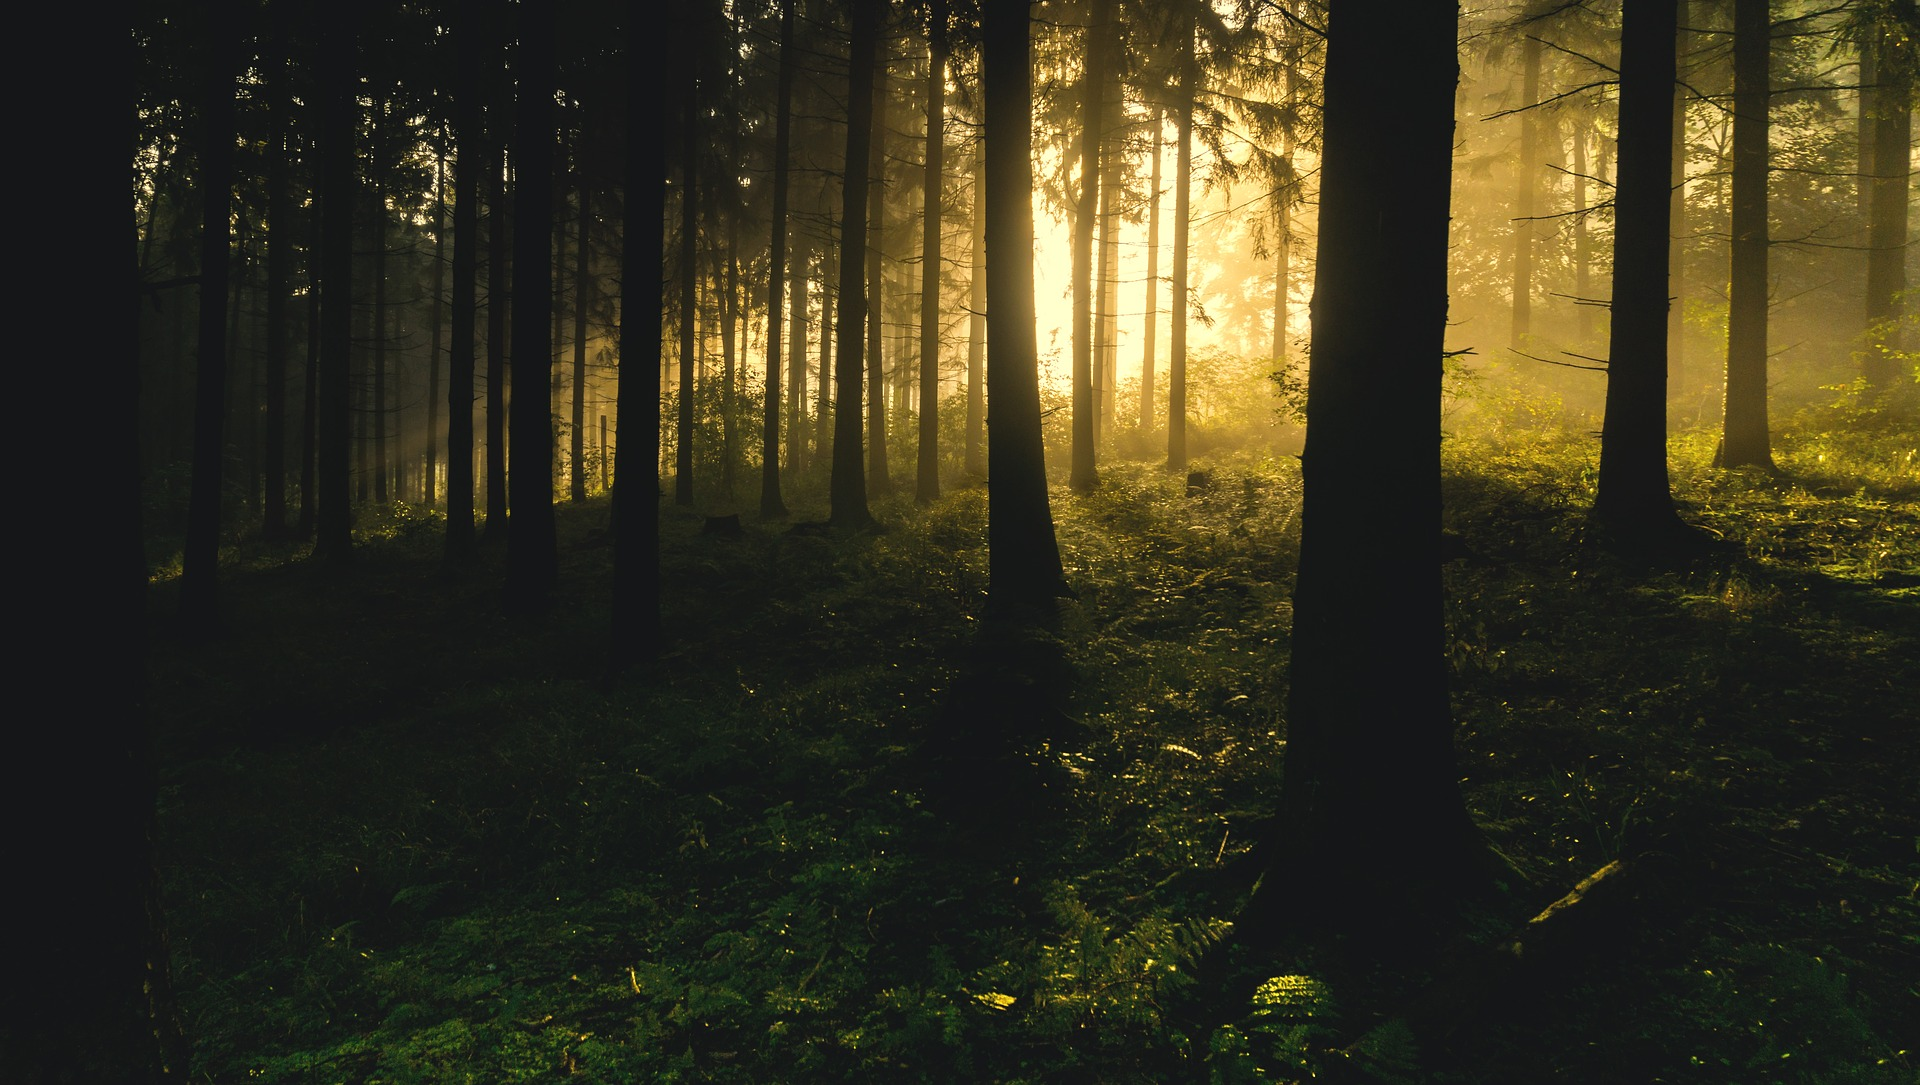 forest-1867975_1920